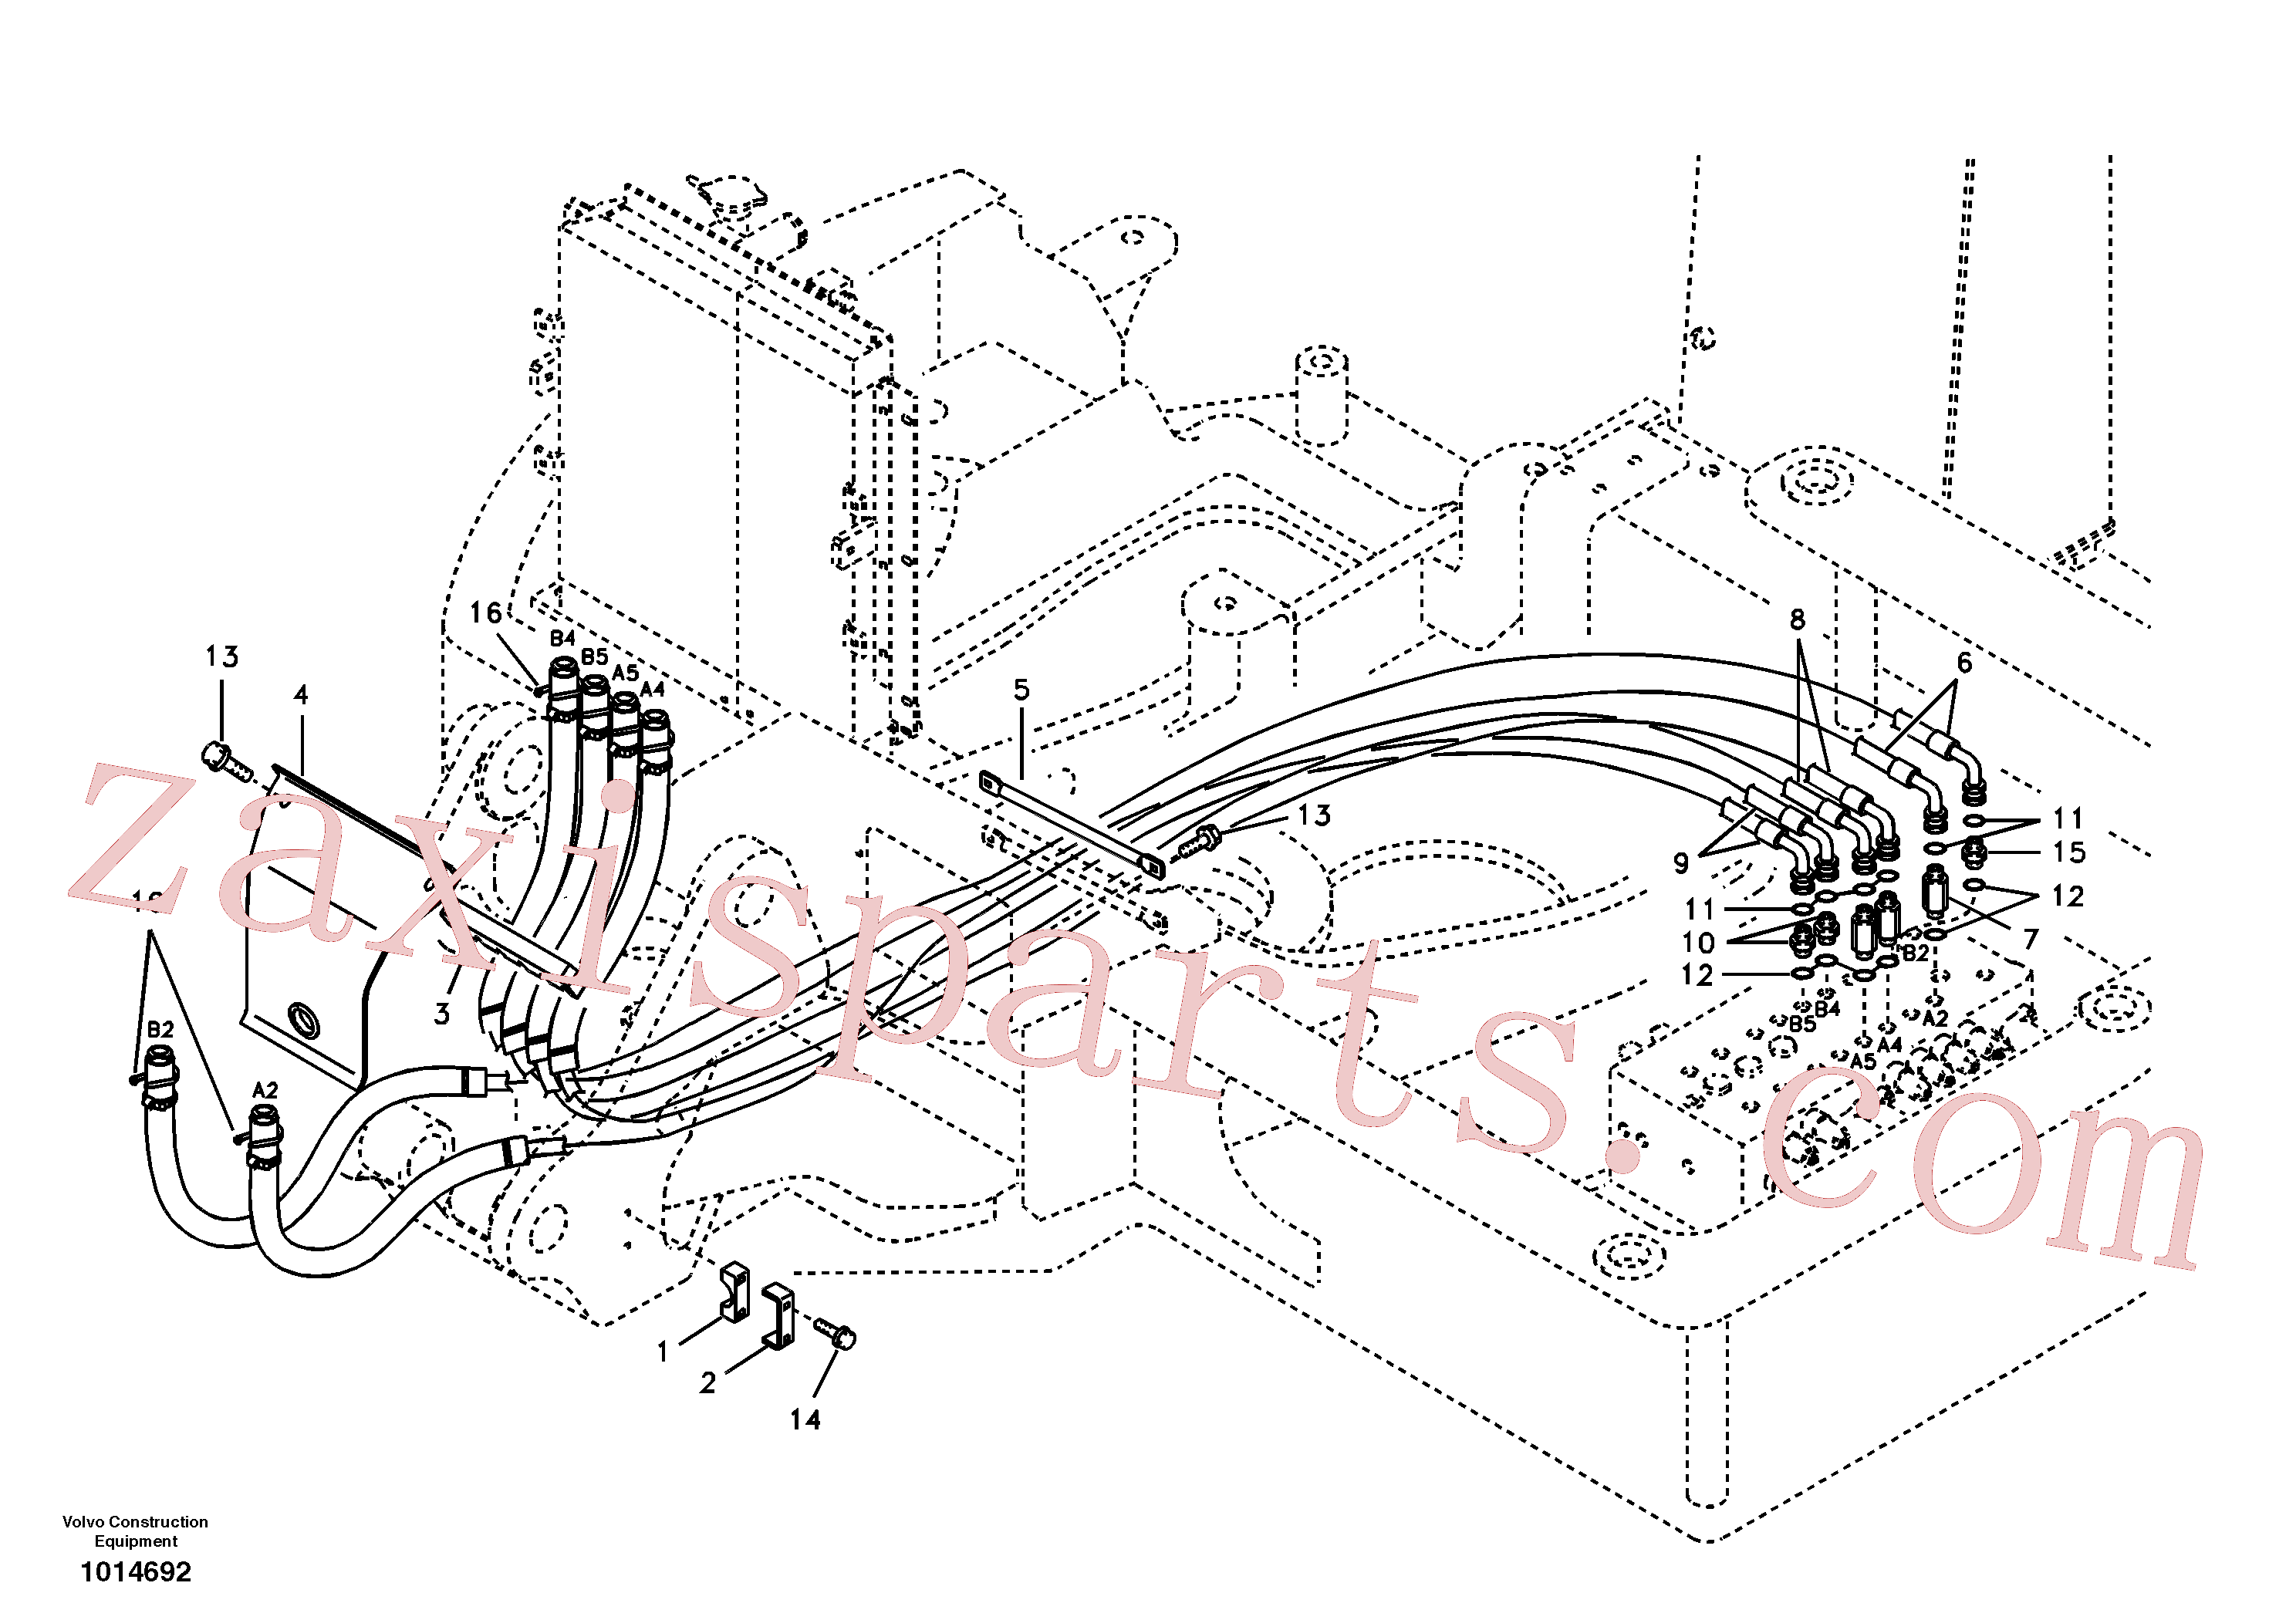 VOE14881330 for Volvo Hydraulic system, attachment line(1014692 assembly)